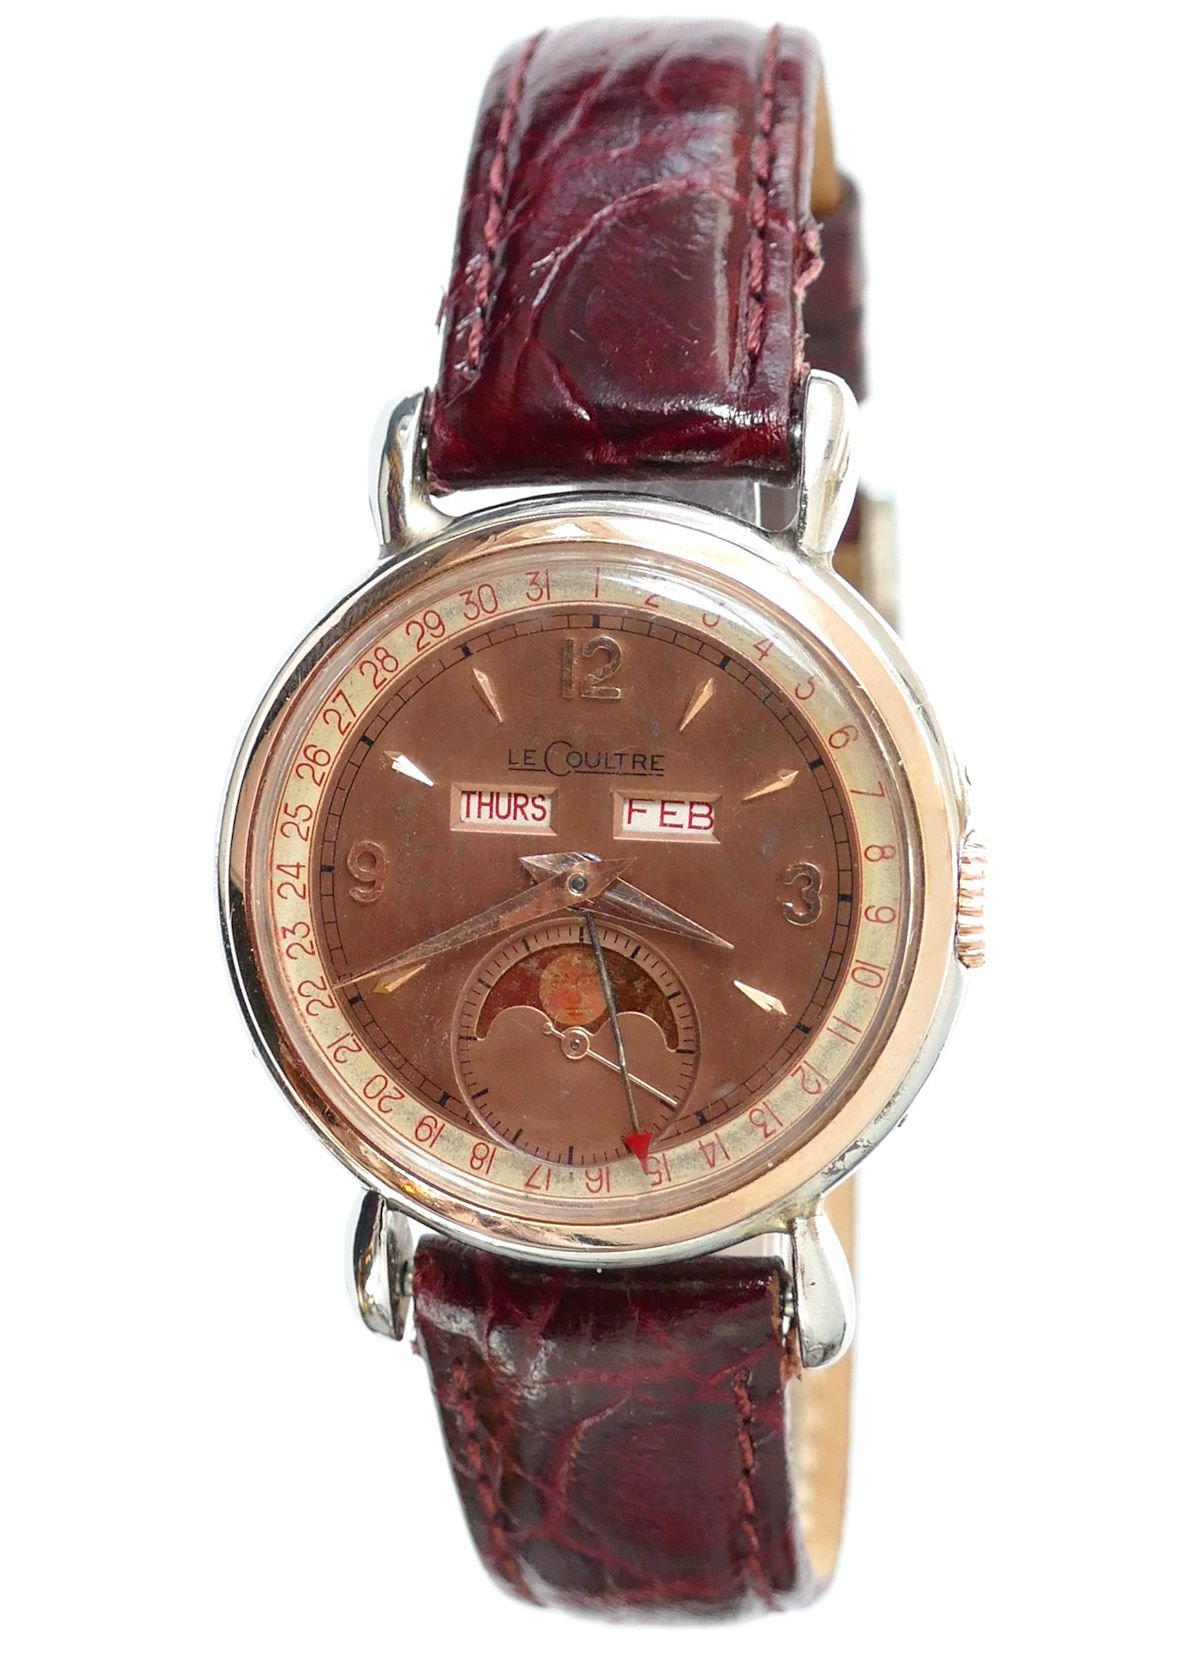 Jaeger-LeCoultre Moonphase Triple Date Vintage Watch